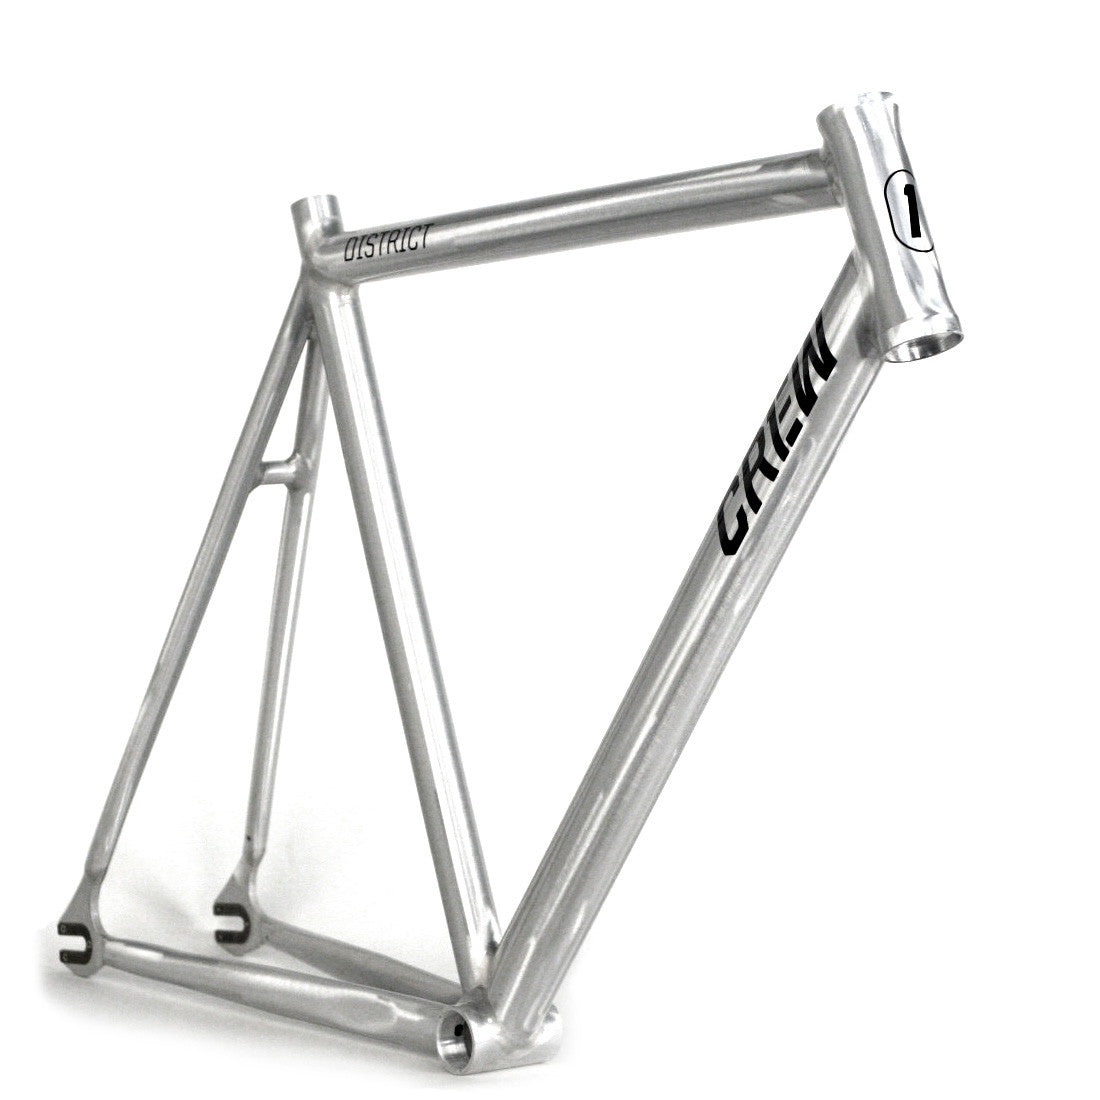 Crew Bike Co. District Track Frame - Raw | Crew Bike Co